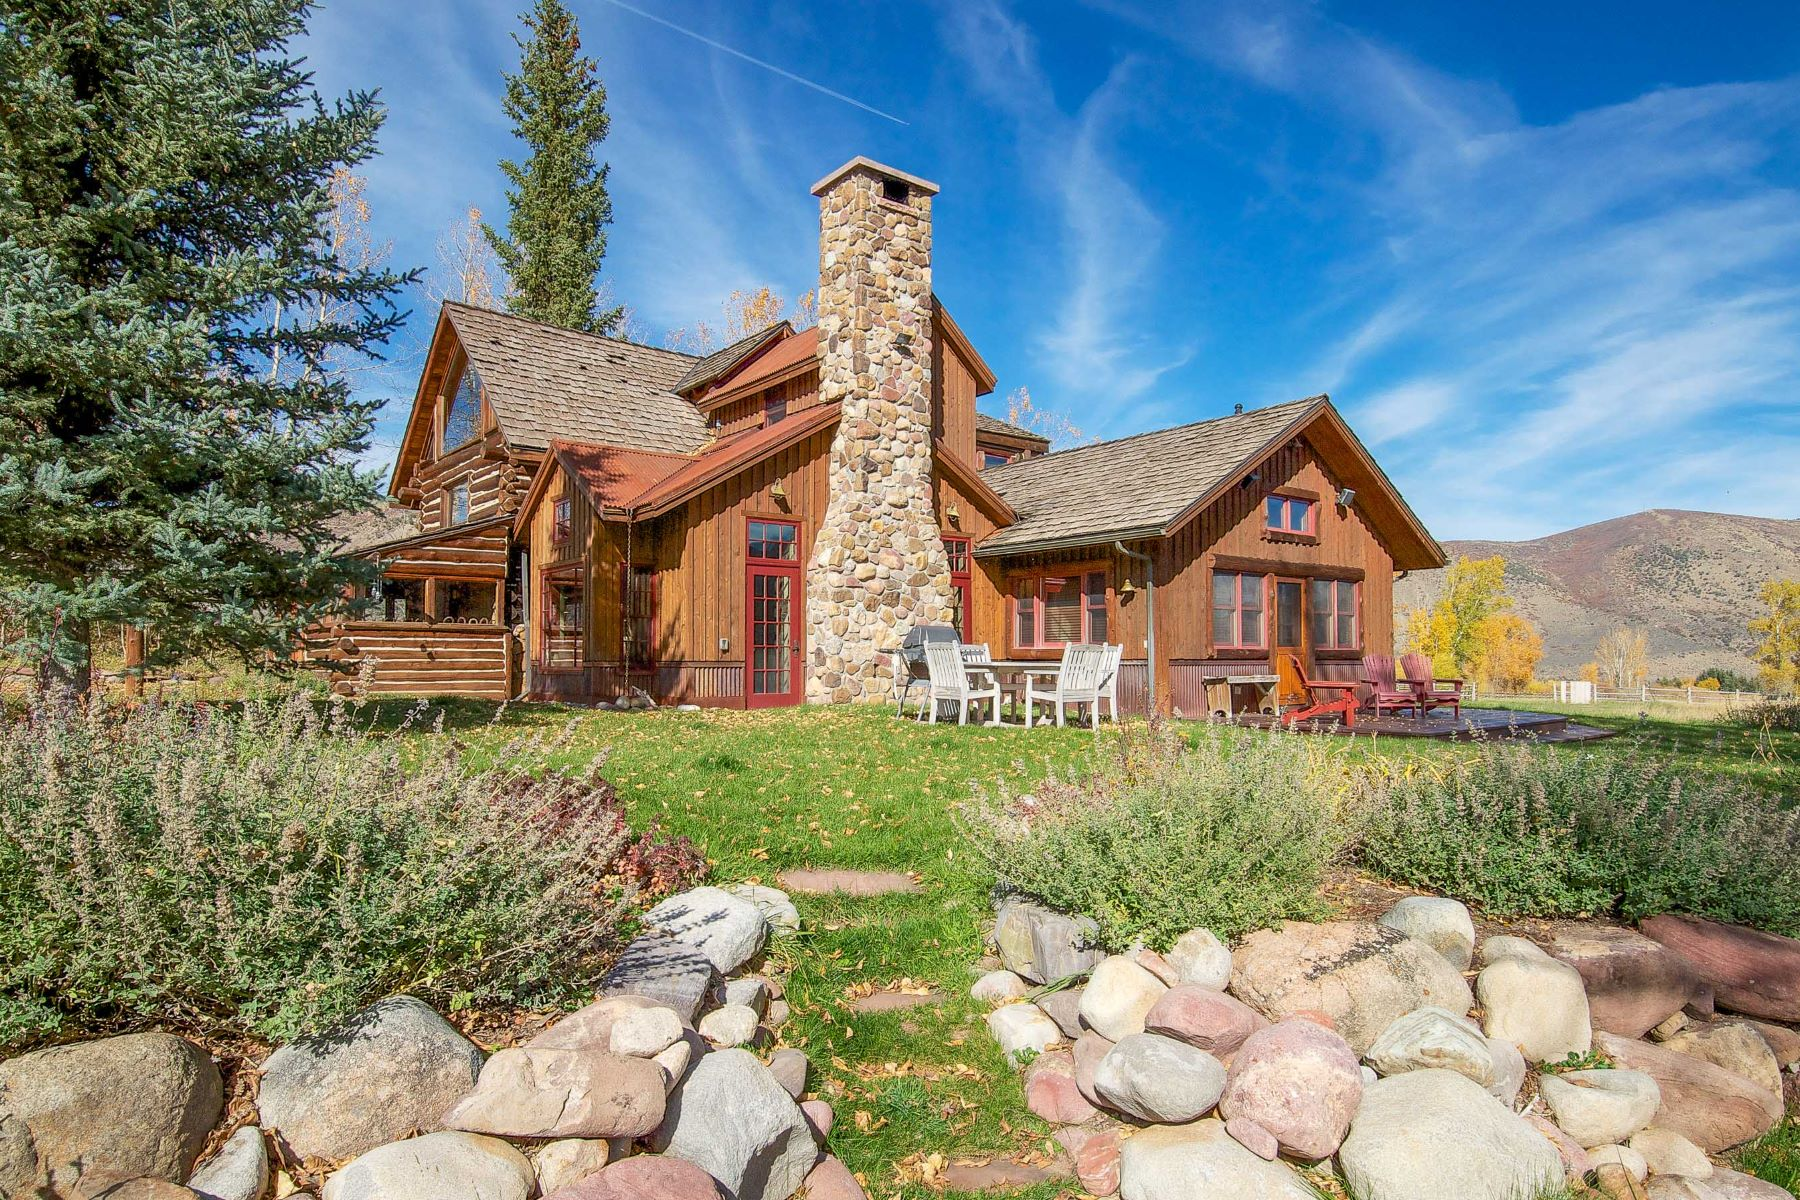 Single Family Home for Sale at Rocky Mountain Ranch on the River 1150 Capitol Creek Road Snowmass, Colorado, 81654 United States